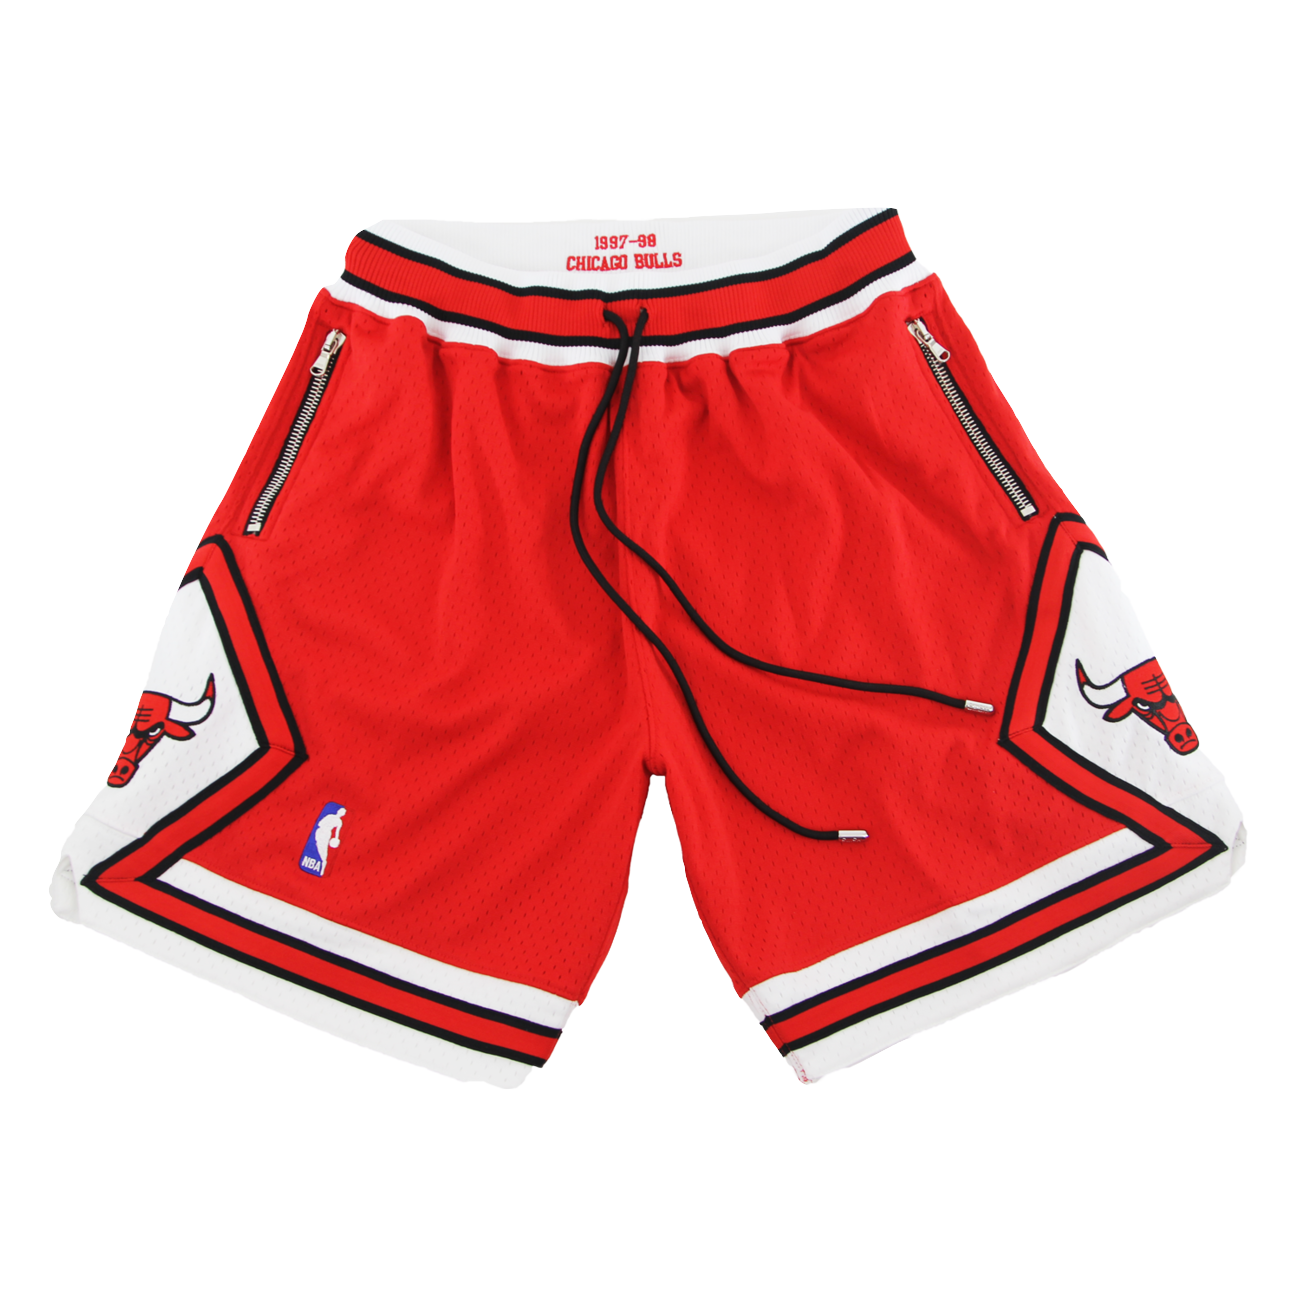 Swish Bulls Authentic Custom Shorts - Red